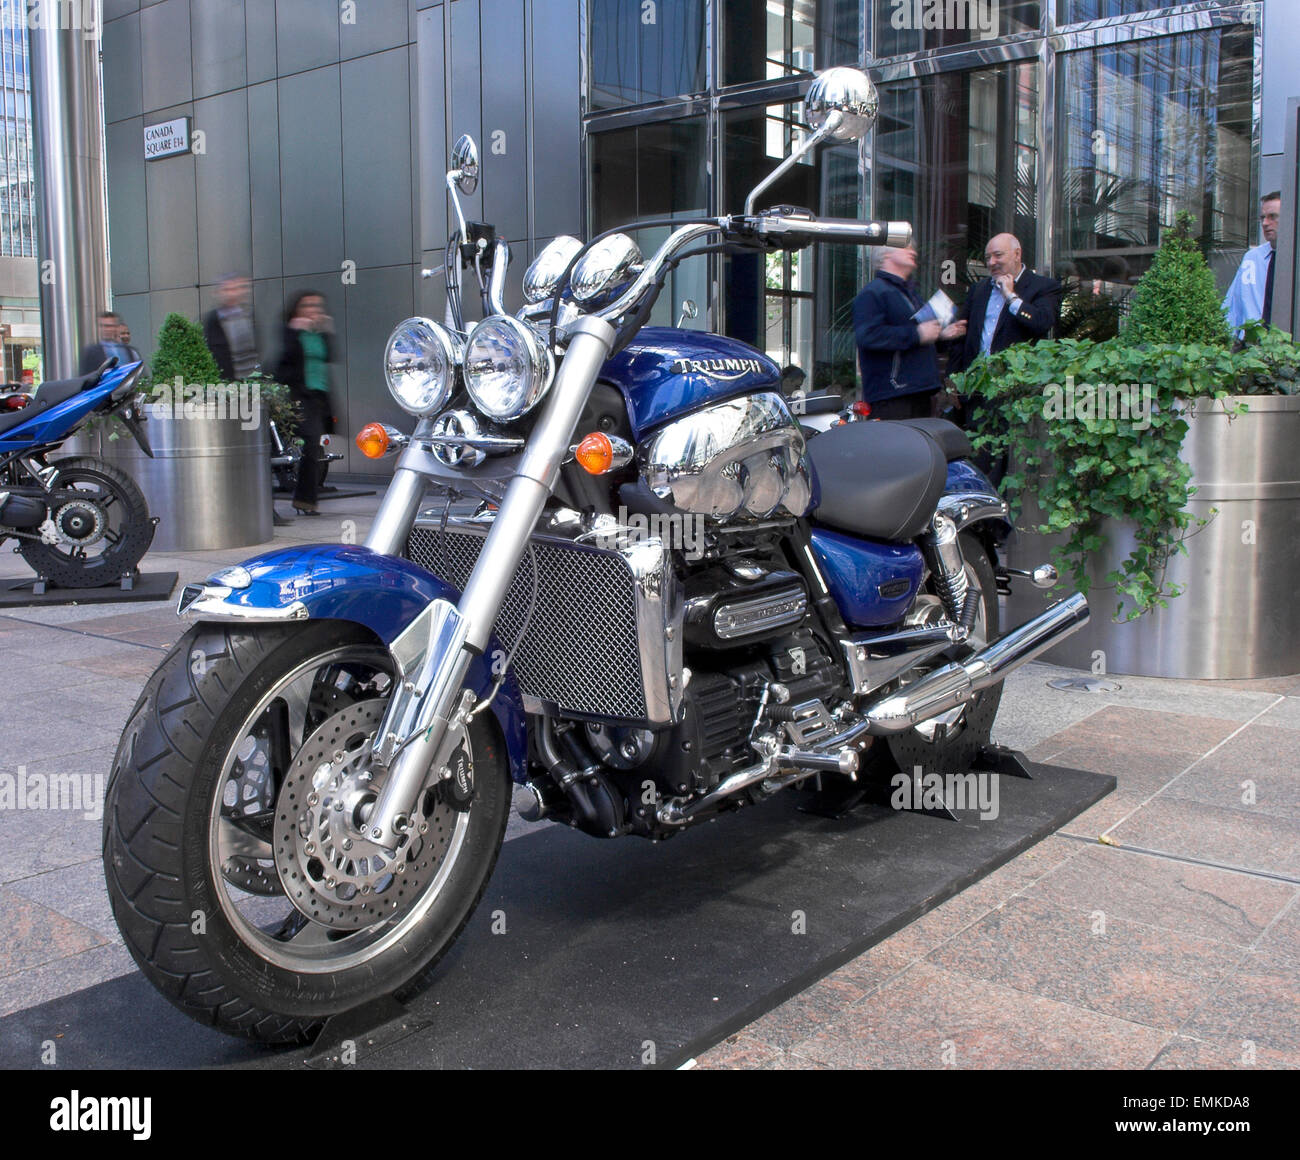 Triumph Rocket Iii Stock Photos & Triumph Rocket Iii Stock Images ...